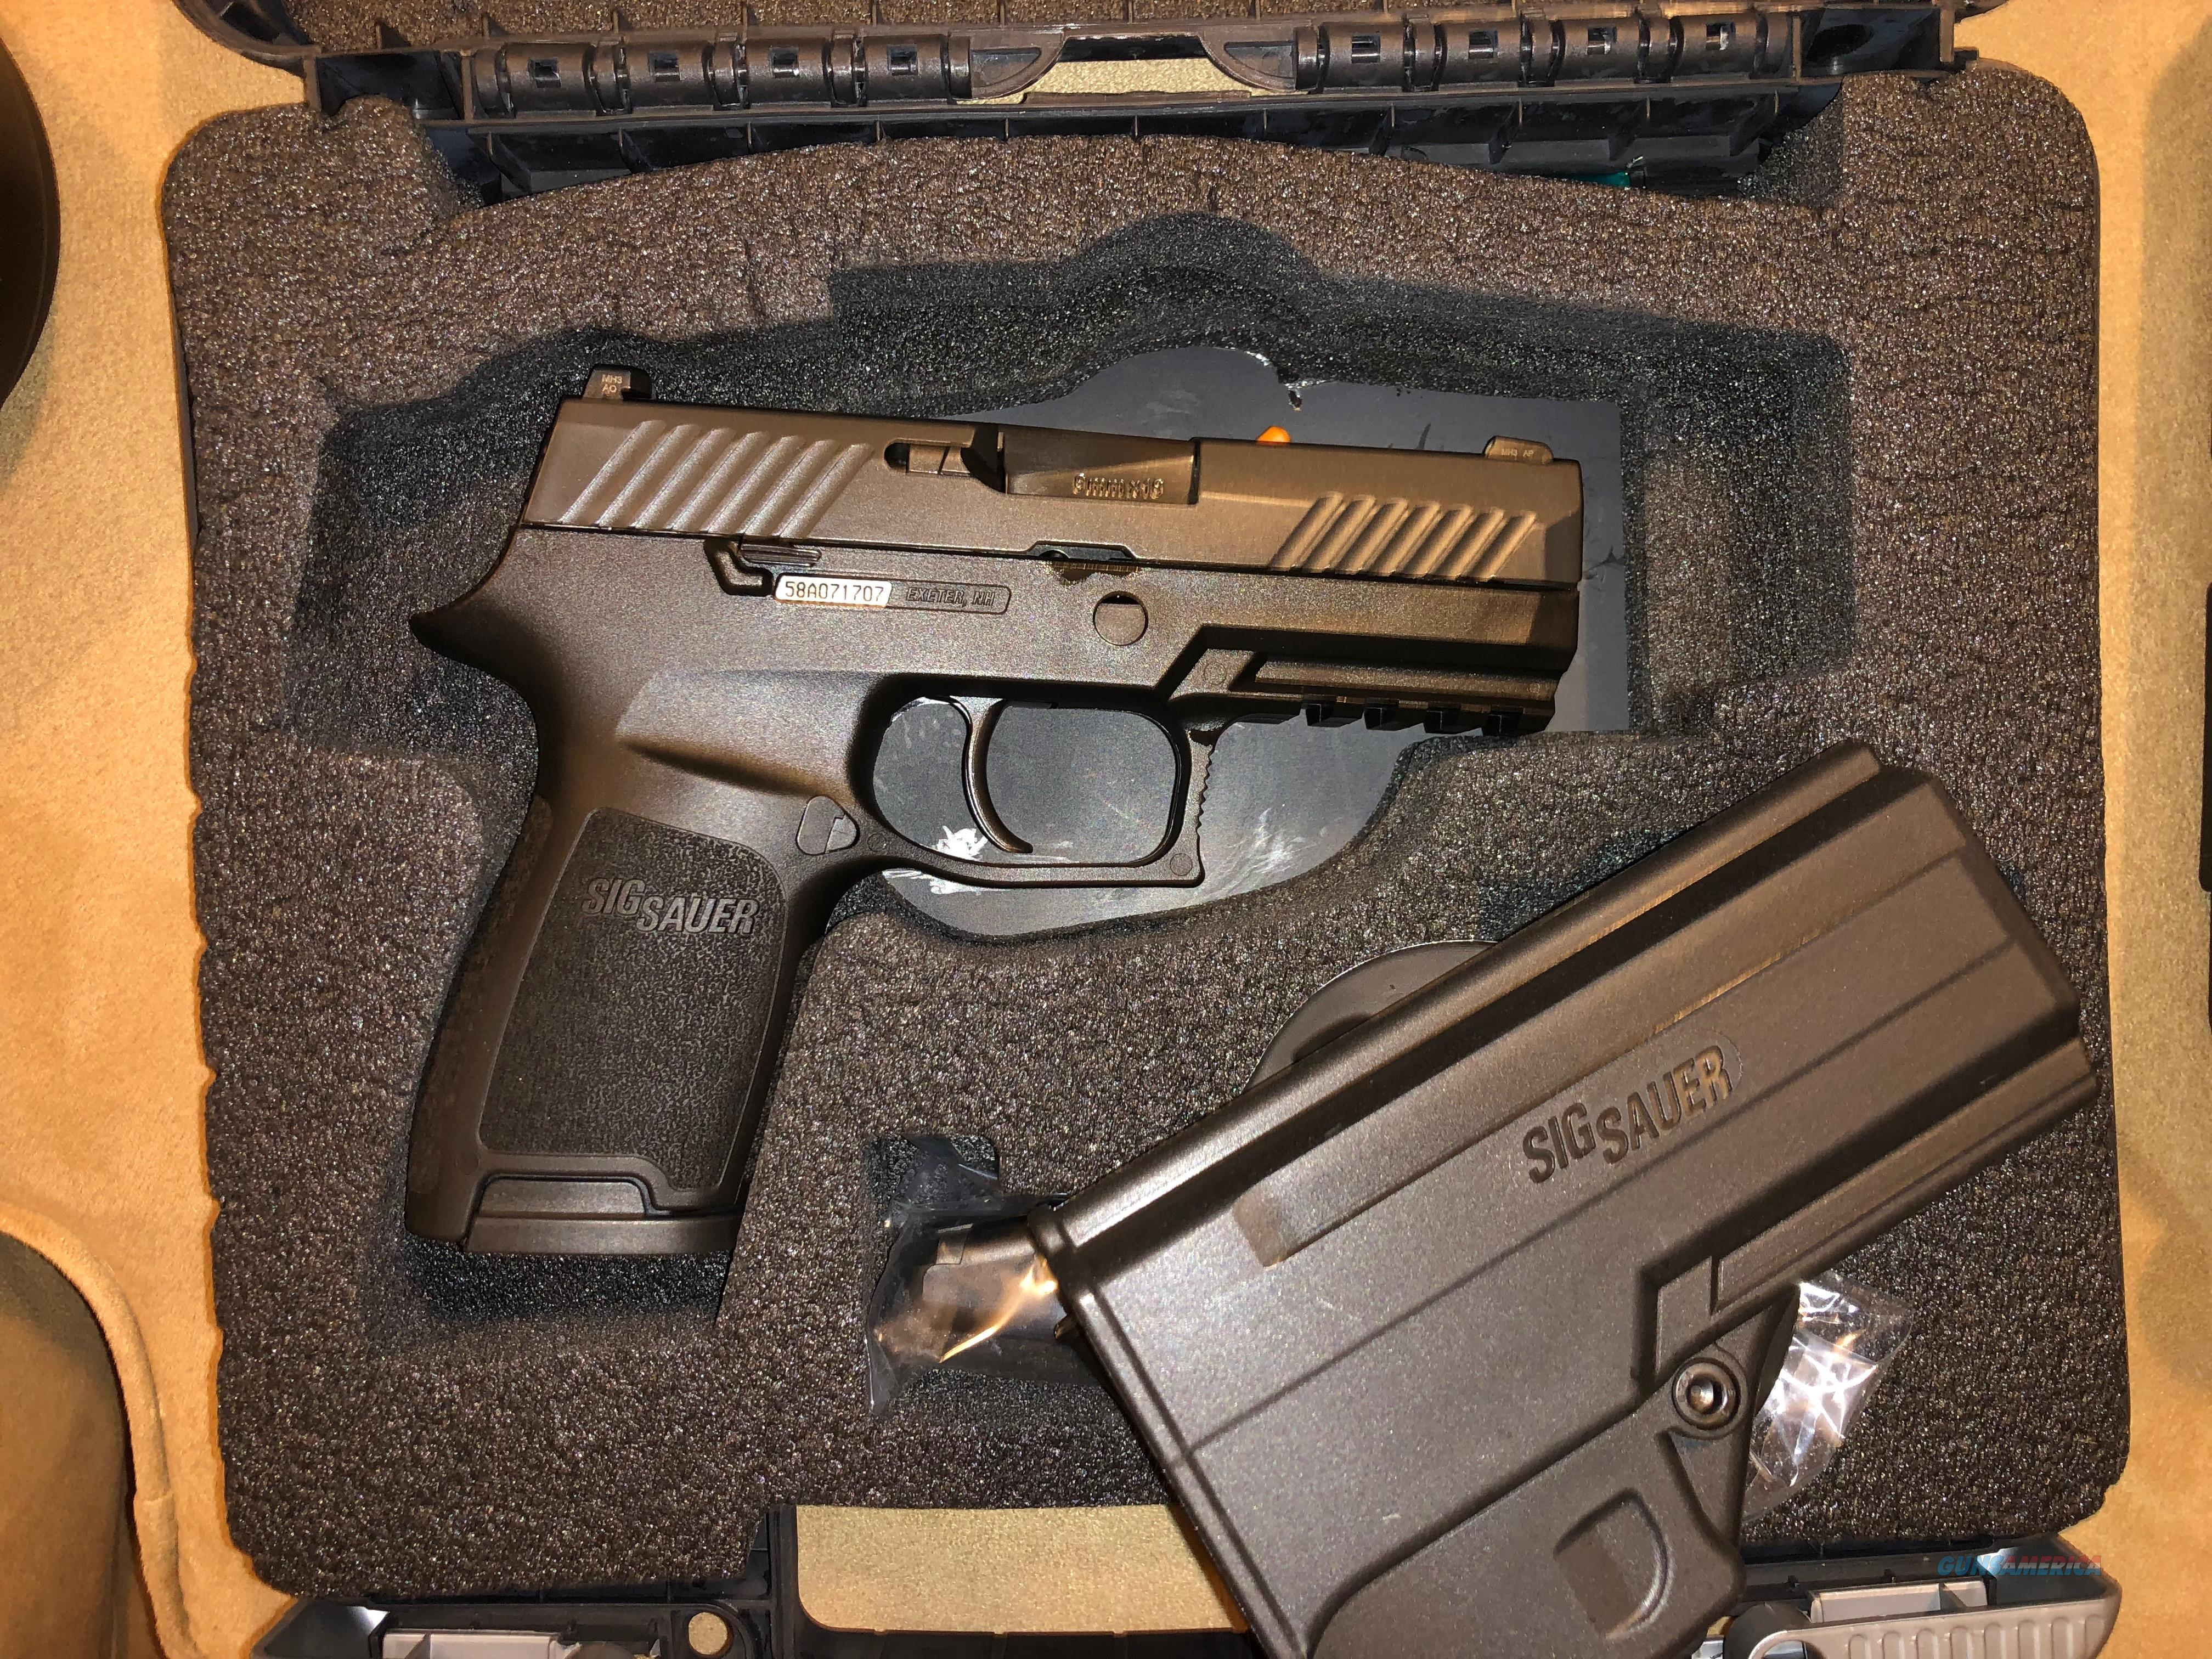 Sig P320 Compact New in Box  Guns > Pistols > Sig - Sauer/Sigarms Pistols > P320